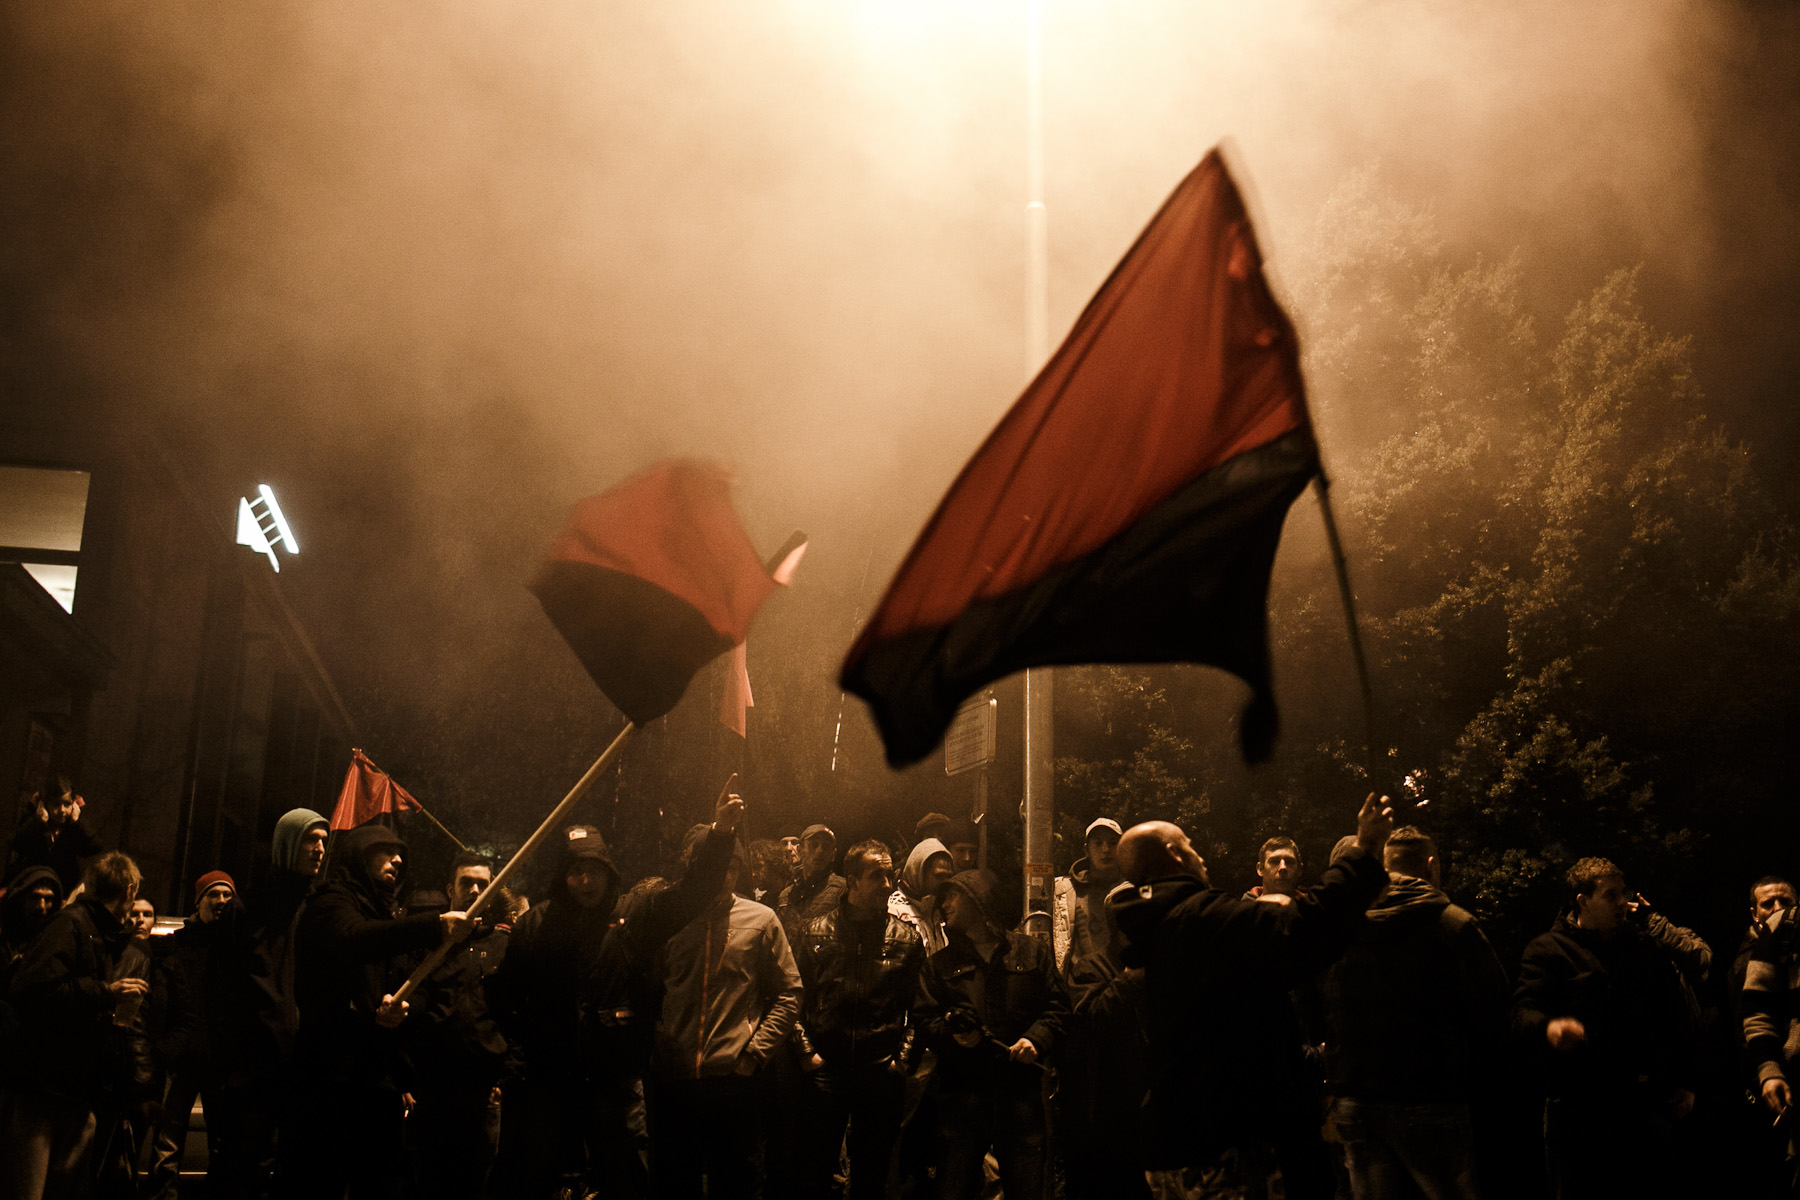 People protest during anti-government protests in Kranj, Slovenia on November 29, 2012.